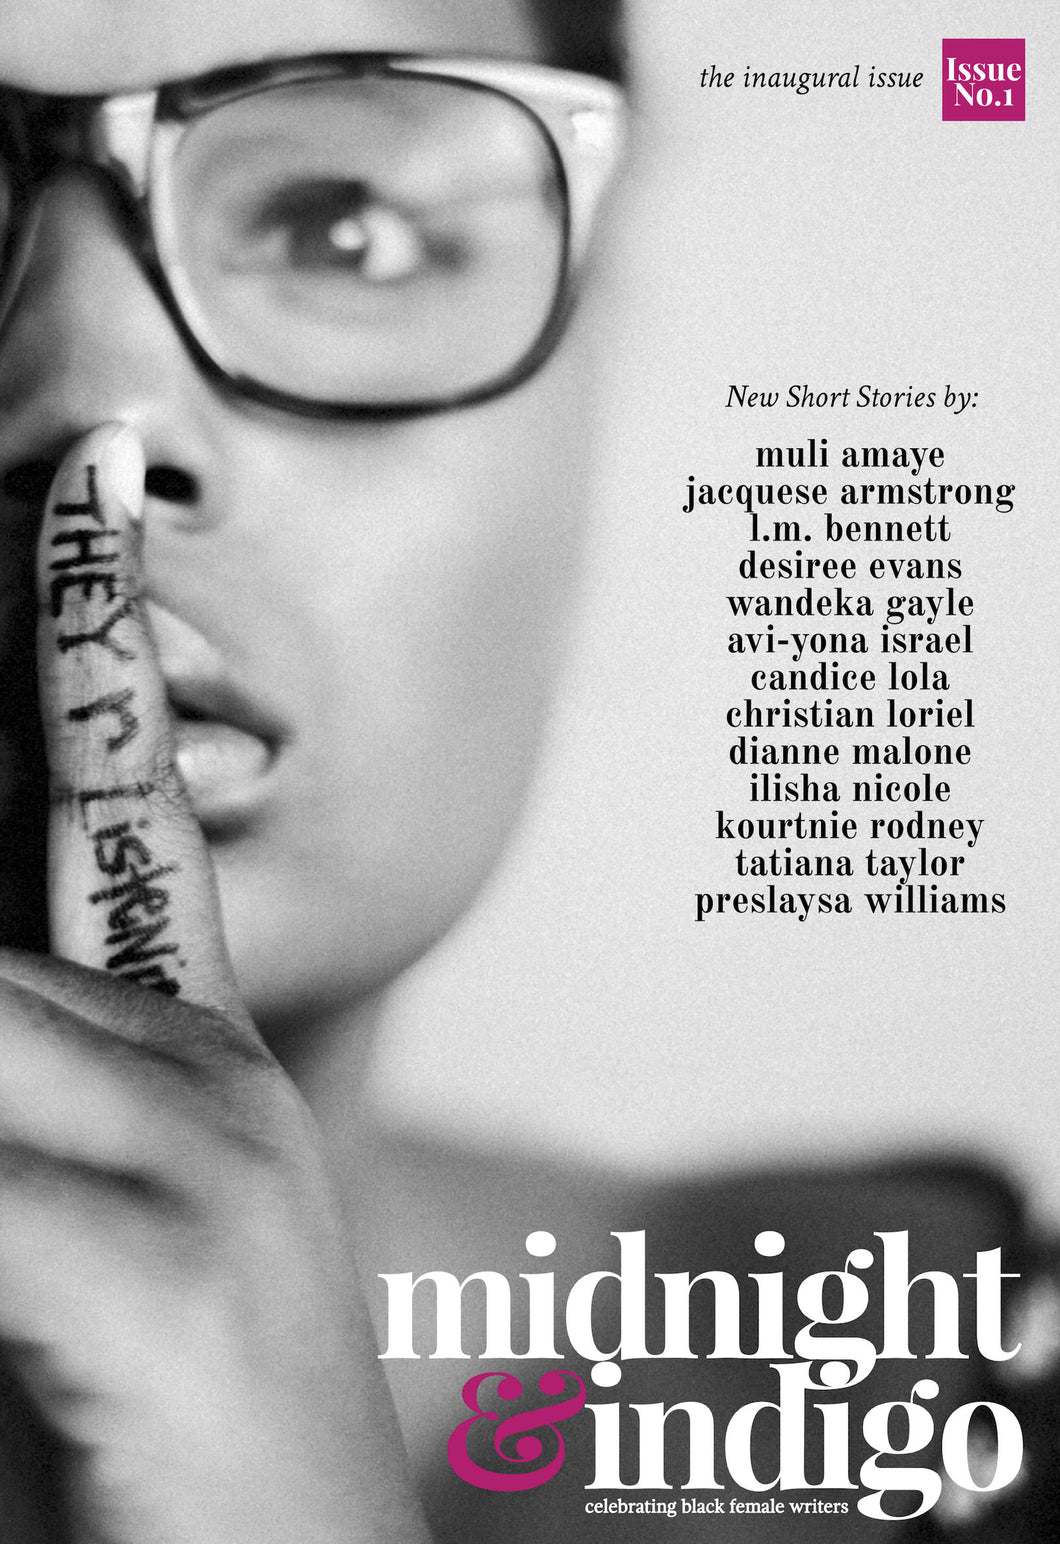 midnight & indigo - Issue No. 1